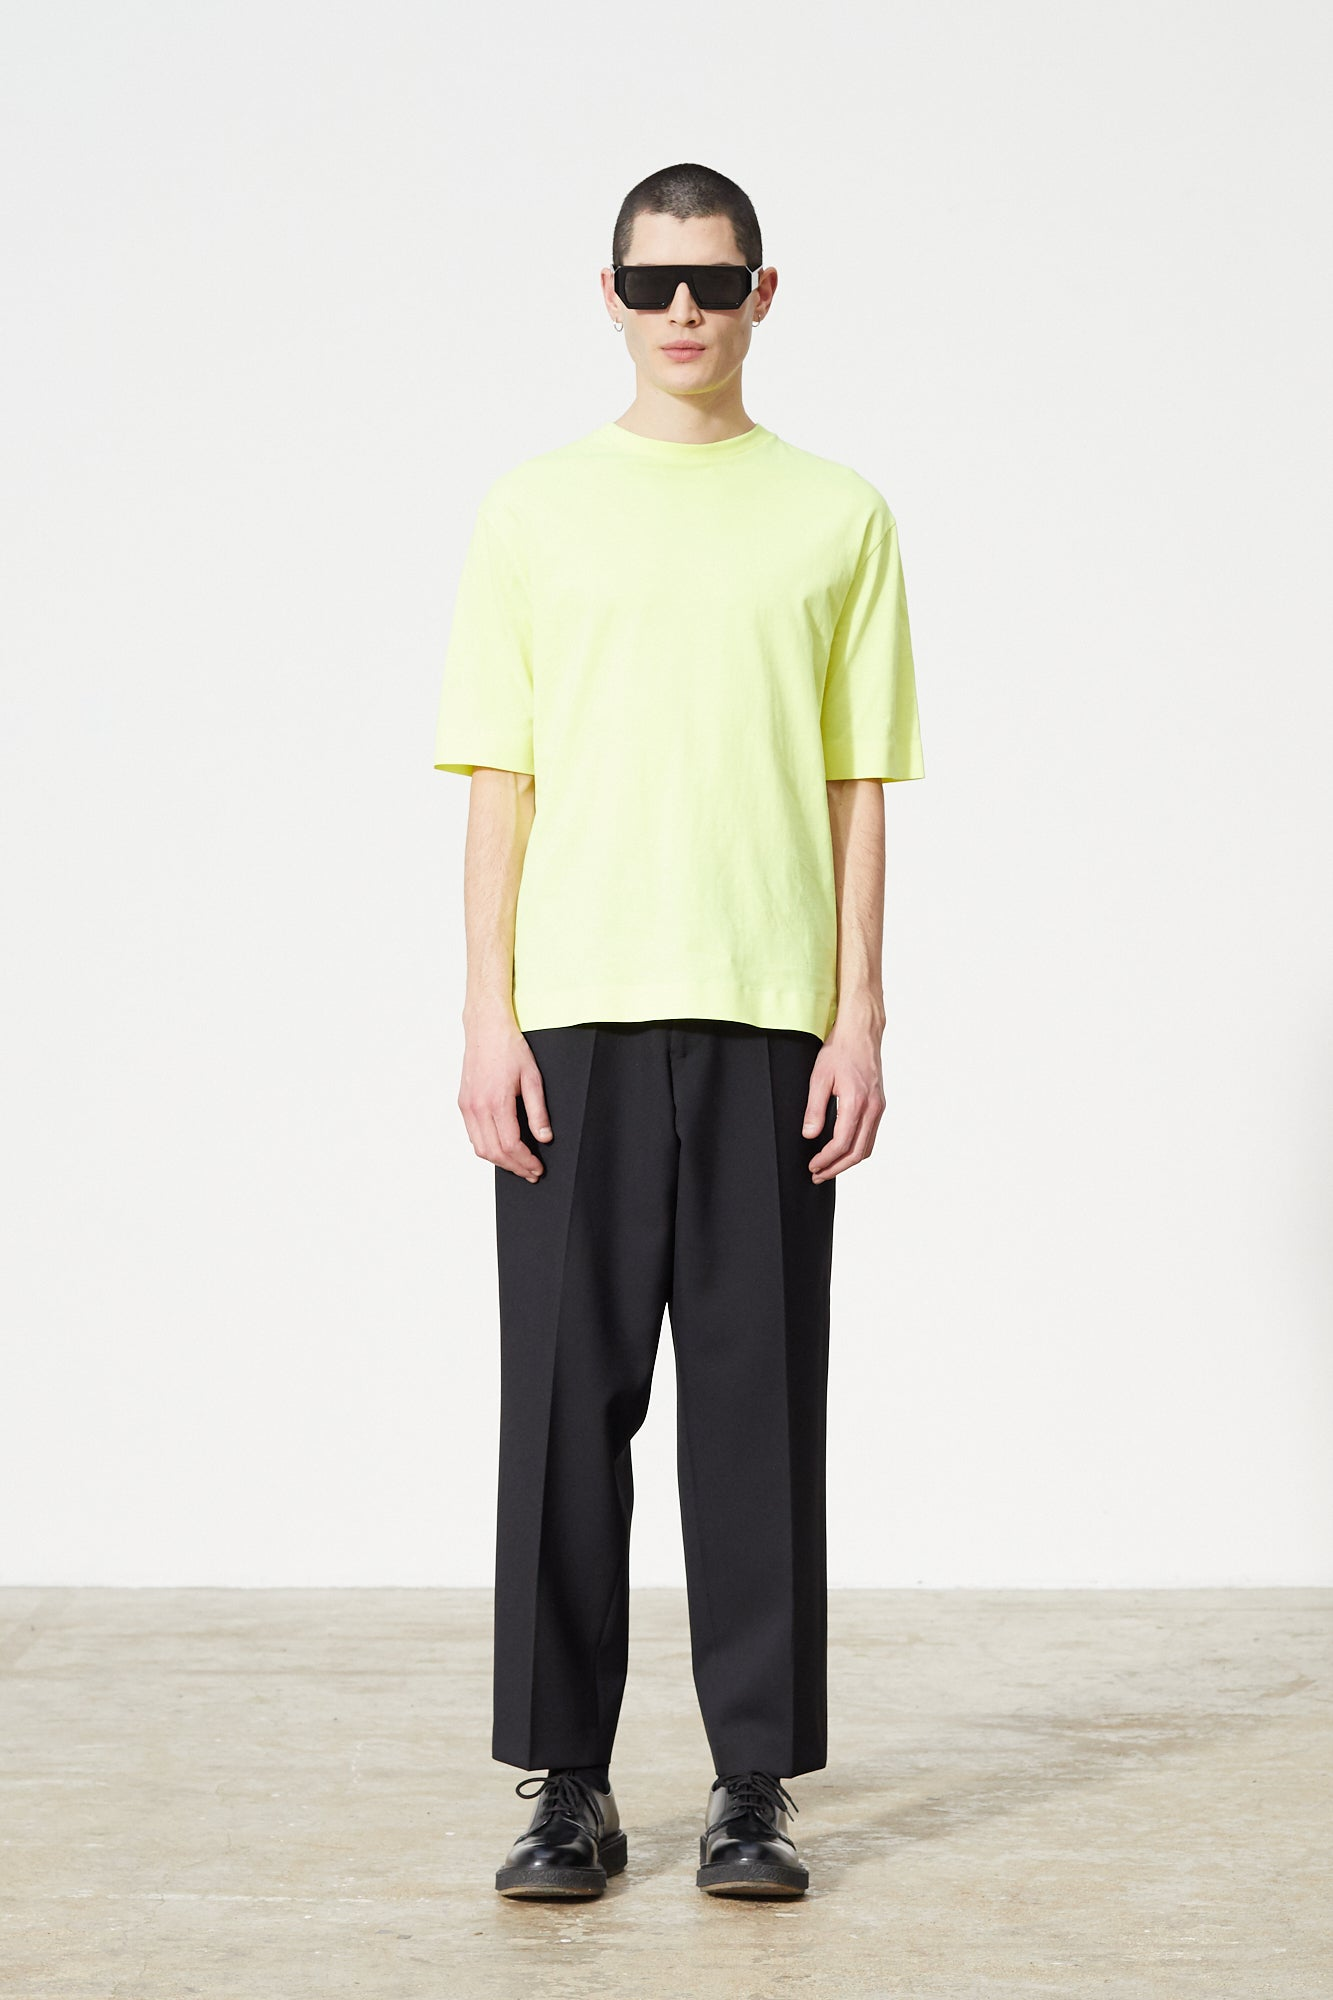 Études Cosmic Neon Yellow T-shirt 1